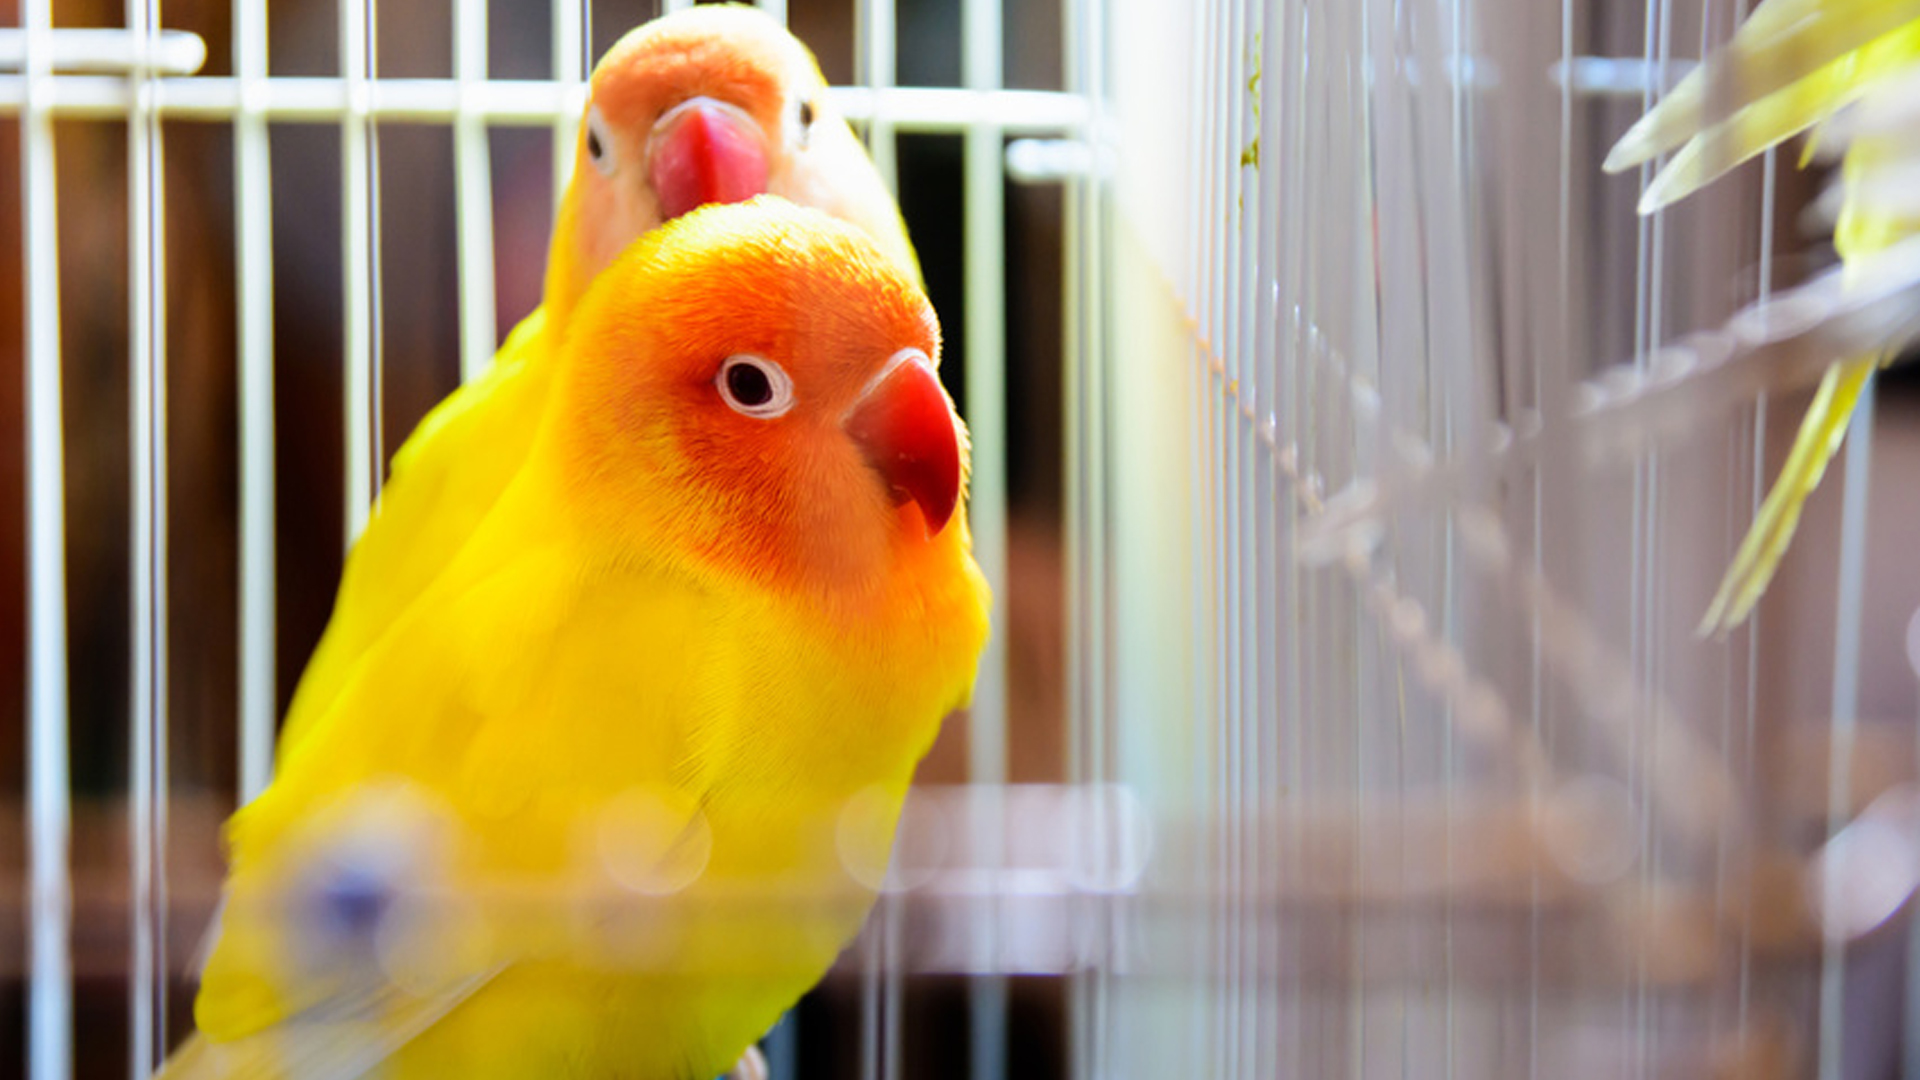 TIPS FOR BIRD-OWNING HOMEOWNERS